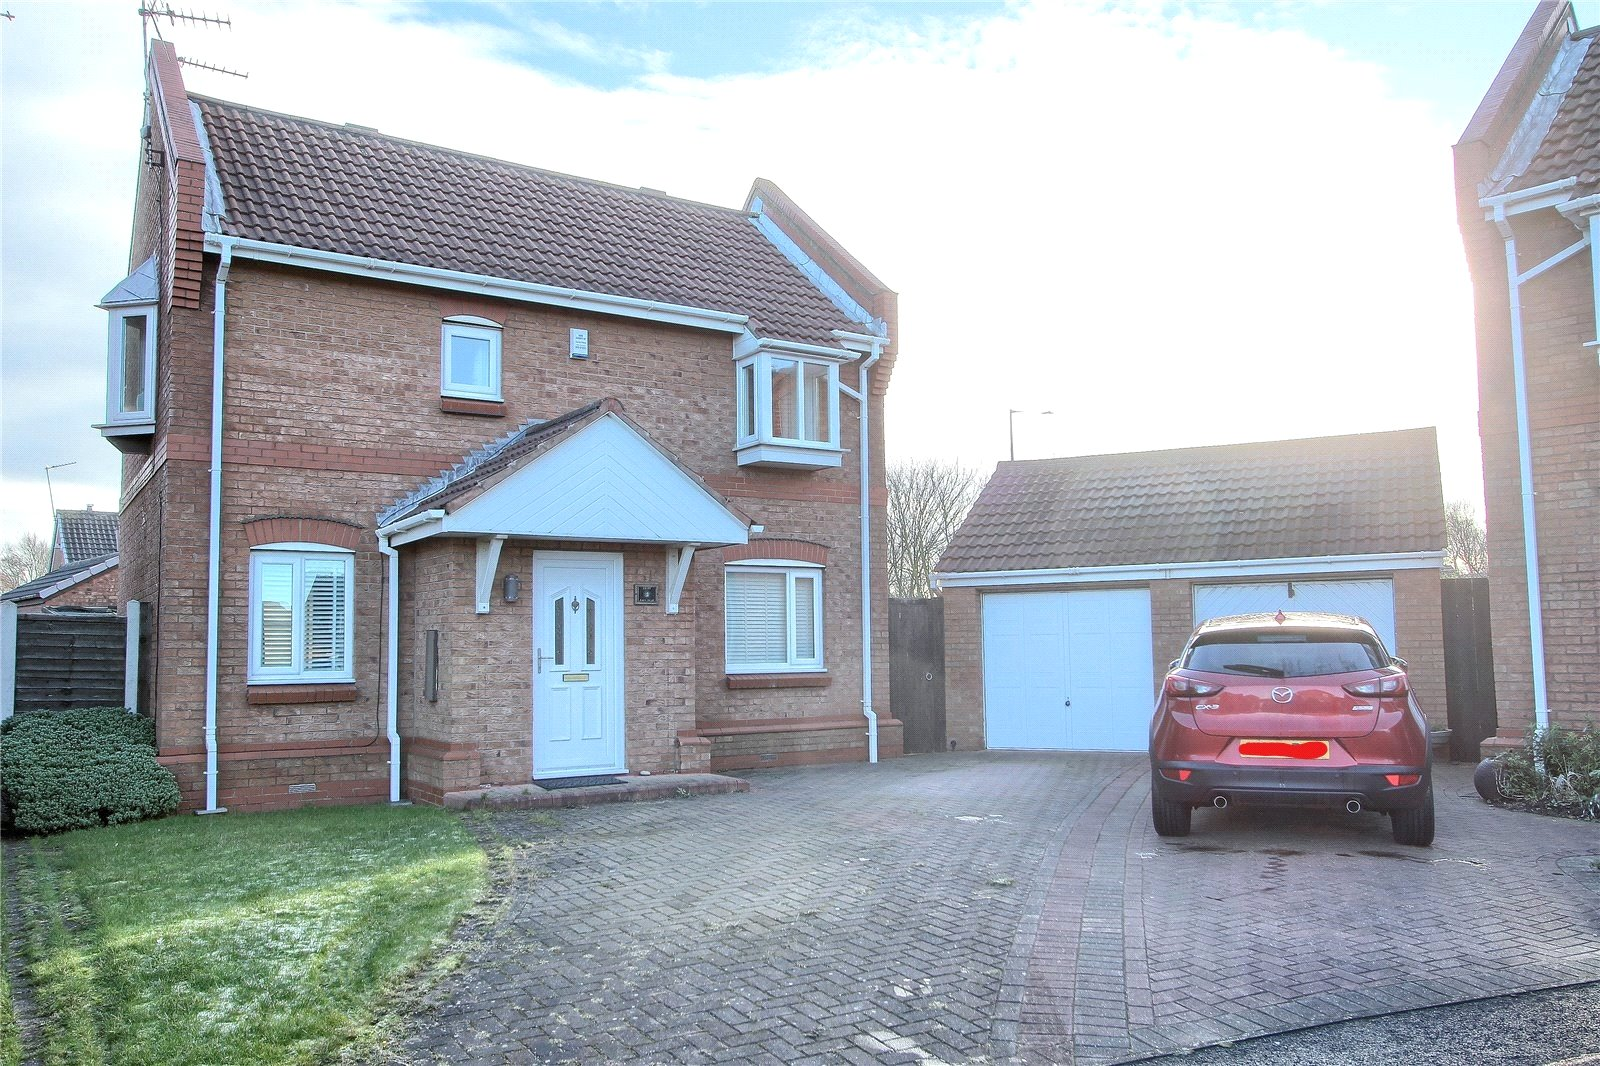 3 bed house for sale in East Scar, Redcar 1